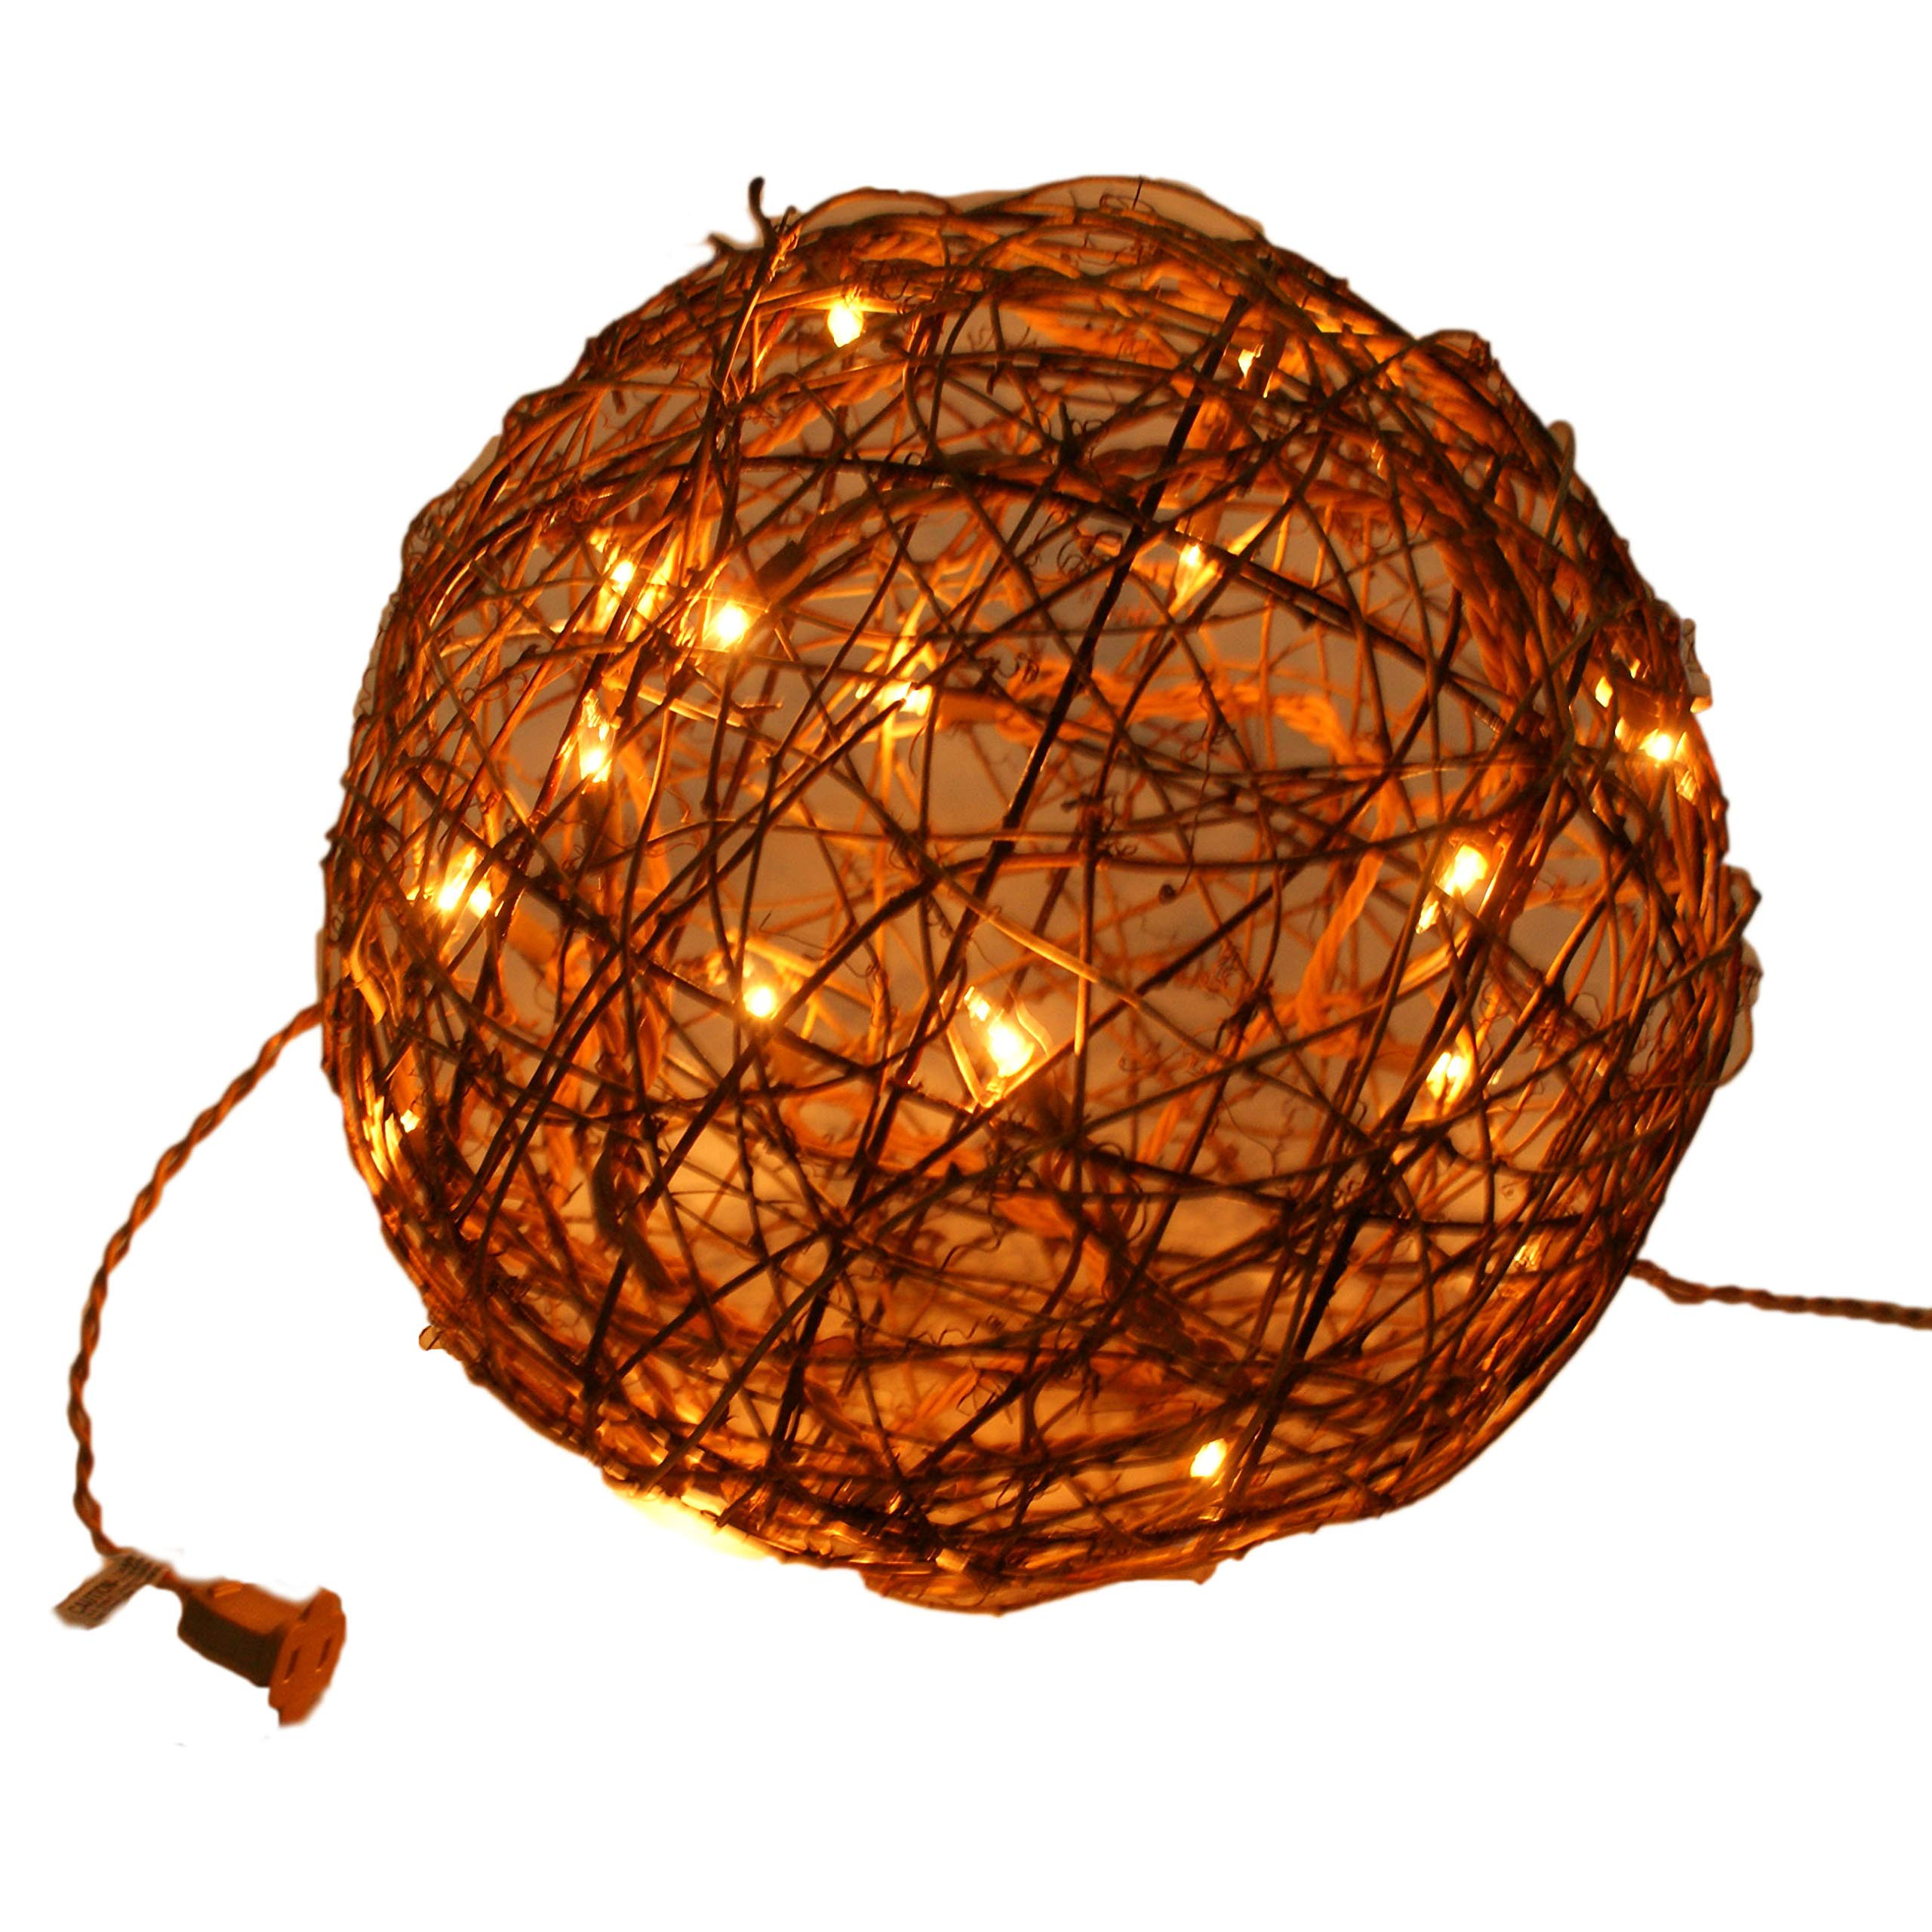 Emlyn LED Pendant Lamp By Emlyn (10'') Christmas Decor, Ambient Mood Lighting Night Globe, Romantic Lantern For Wedding, Holiday, Patio, Outdoor (Warm White), rattan, grape (10'') by Emlyn